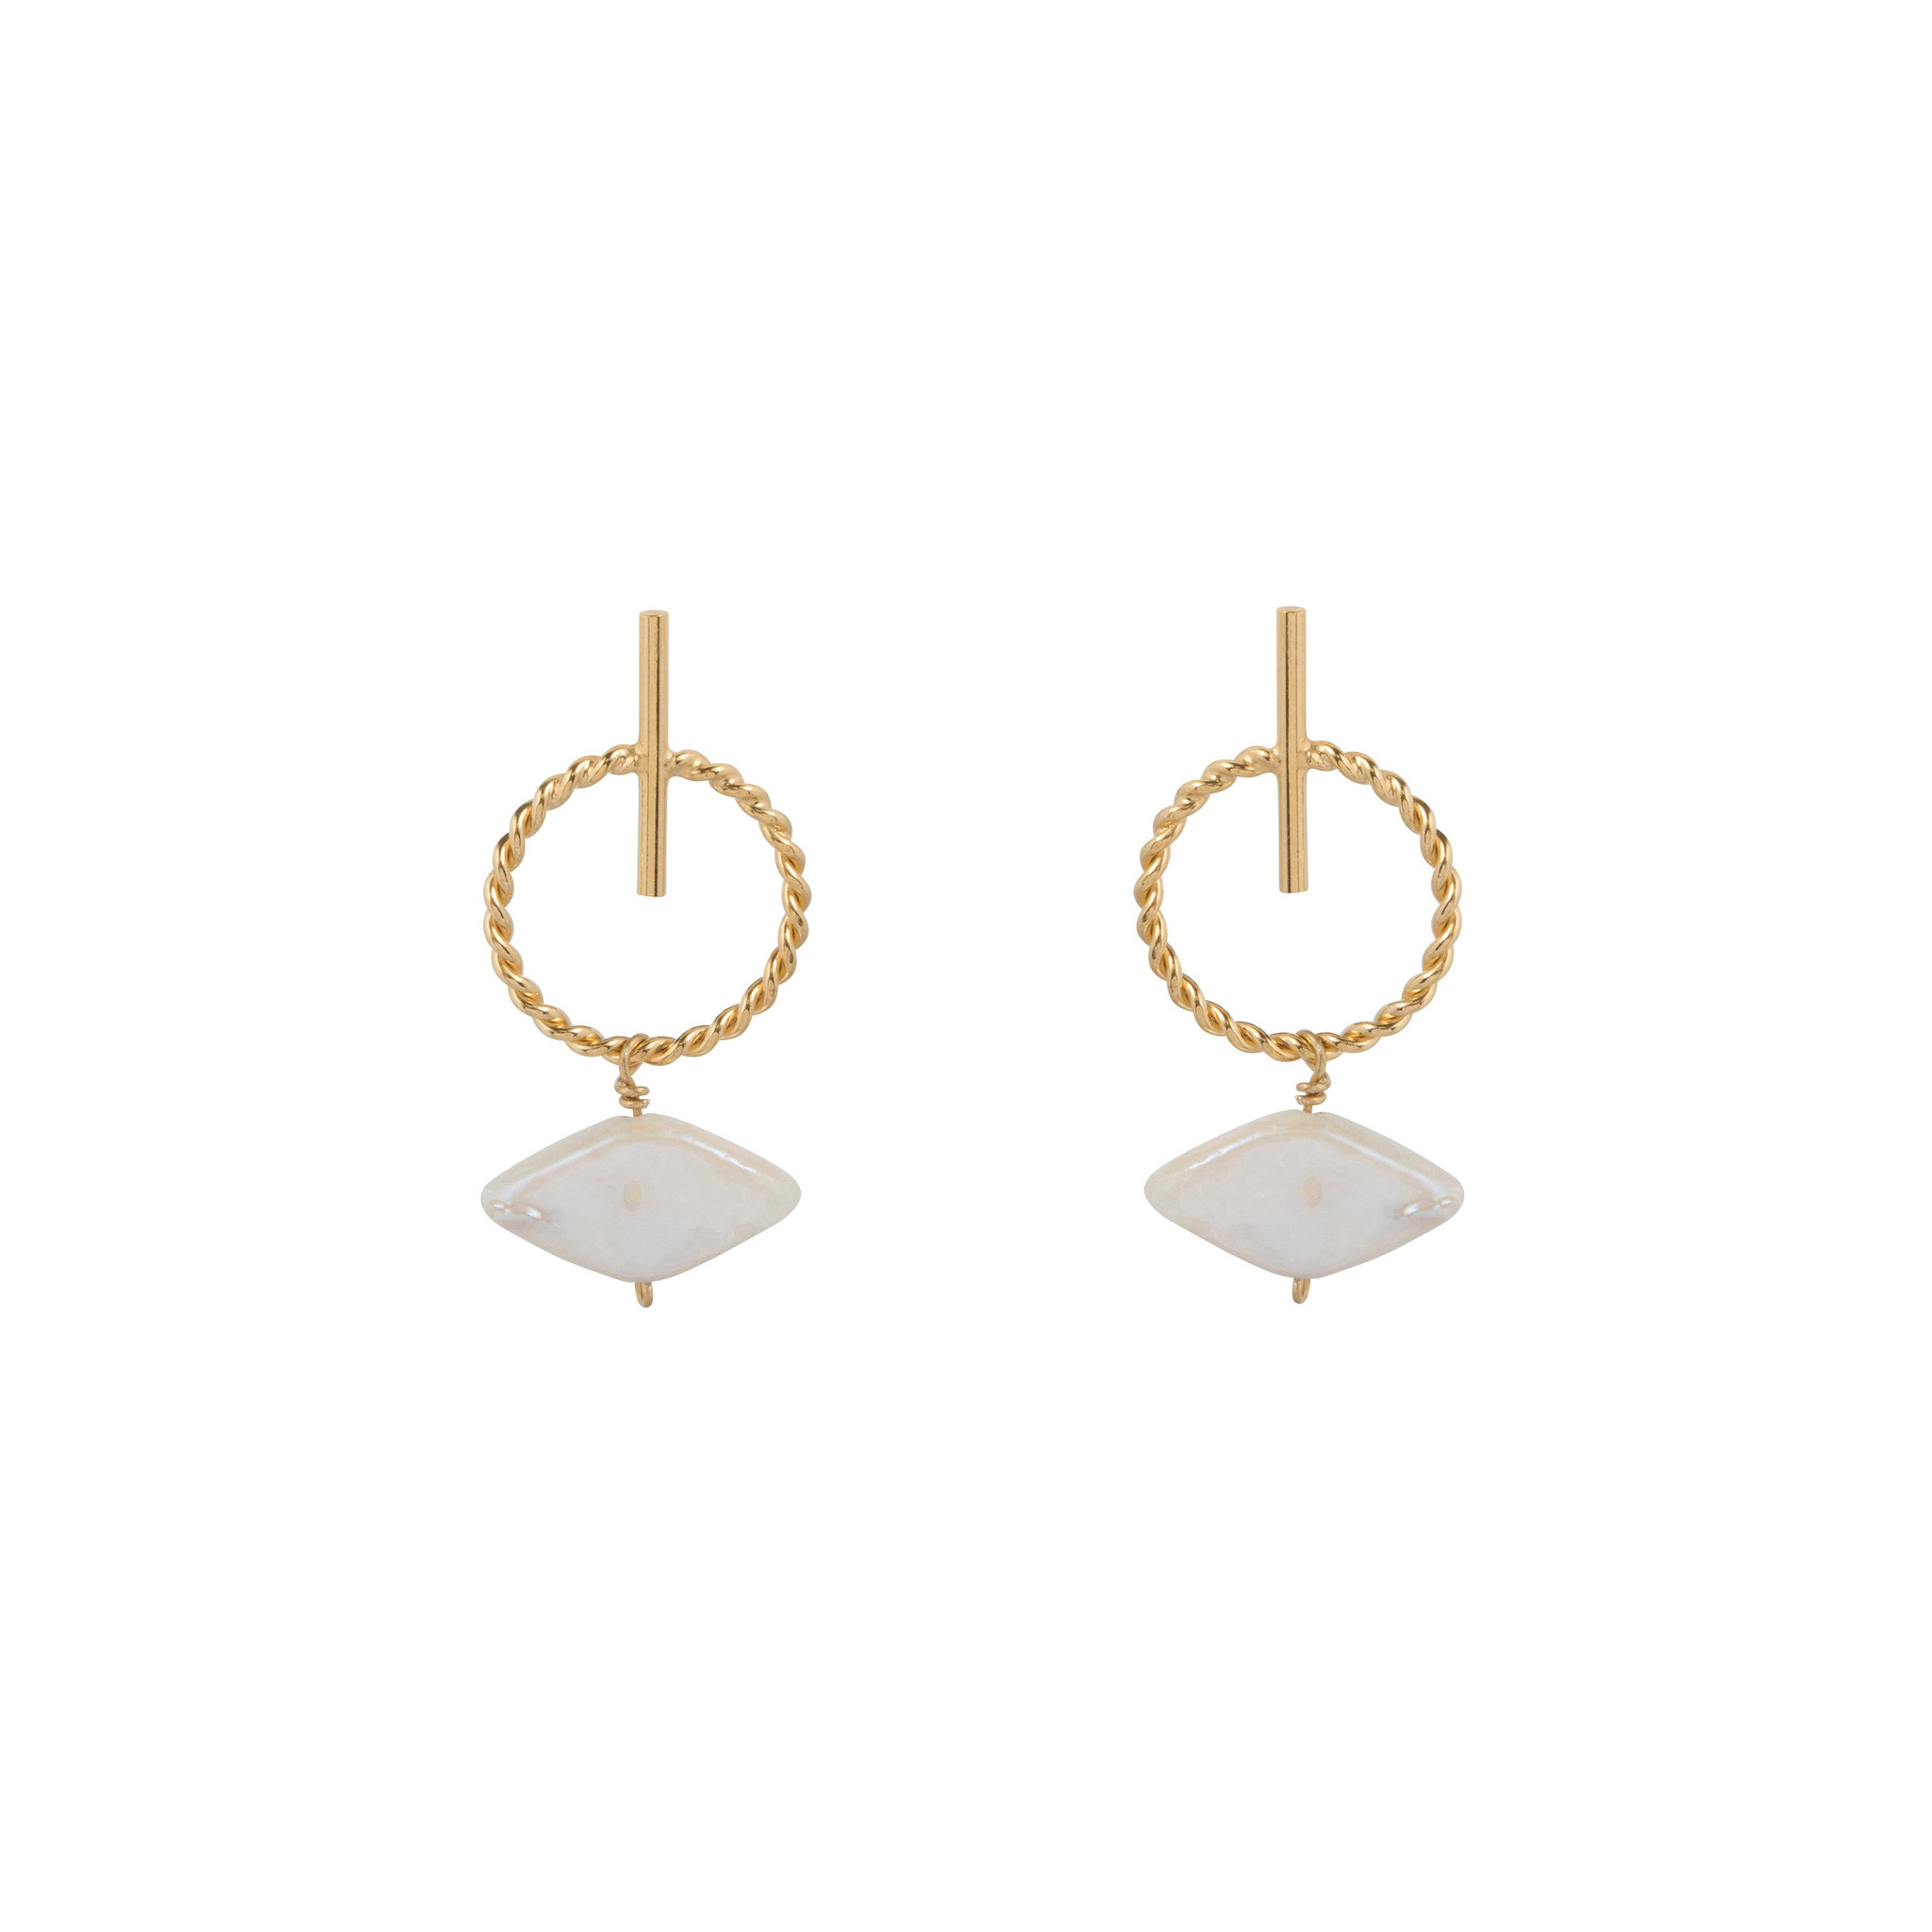 Stud earrings with hoop and white mother of pearl